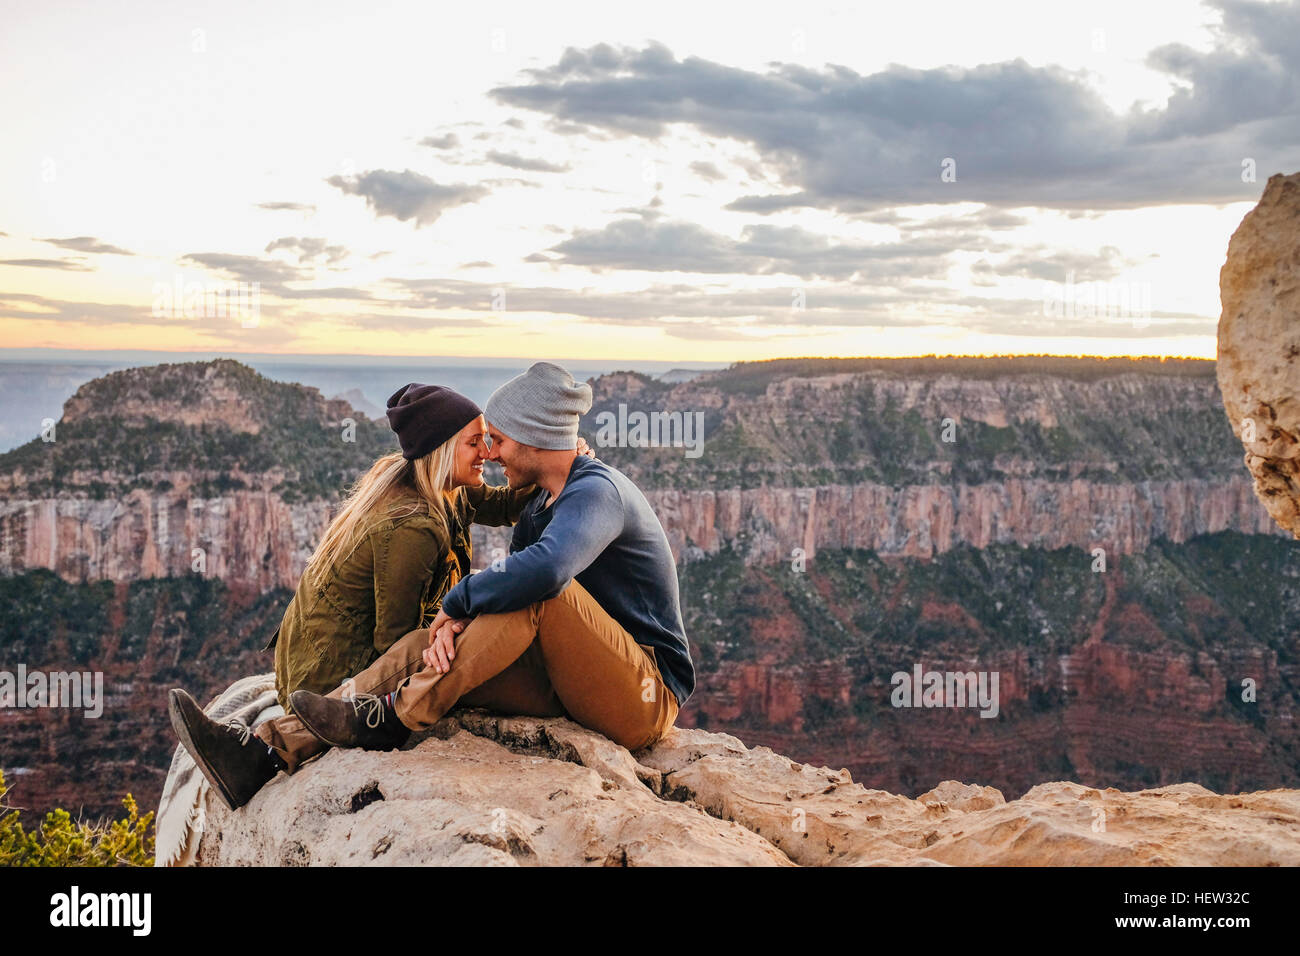 1. Dine on the Edge of the South Rim